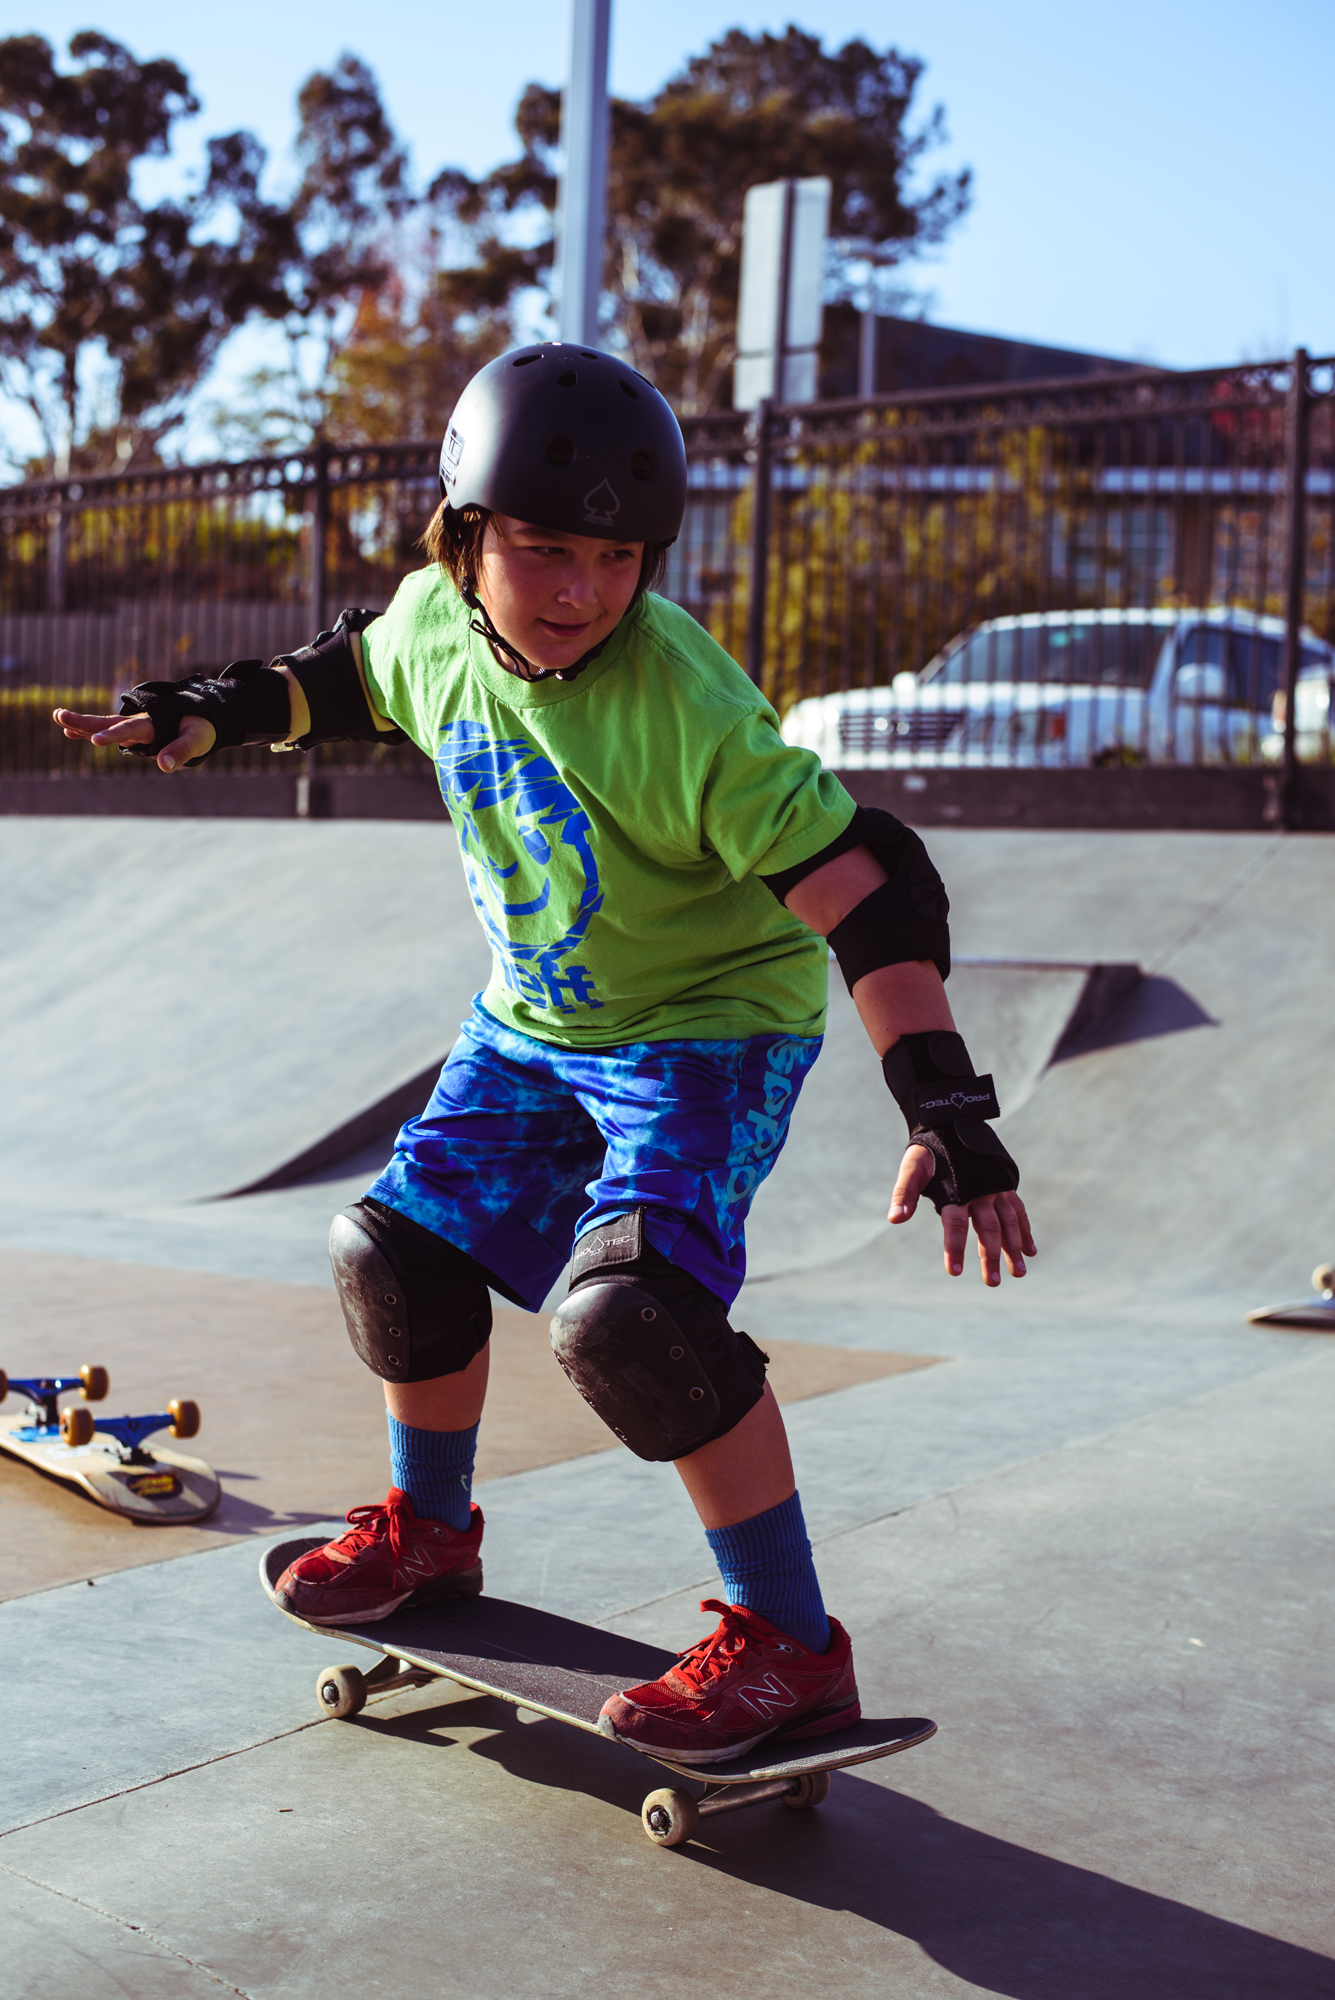 Skateboard Birthday Party-11.jpg